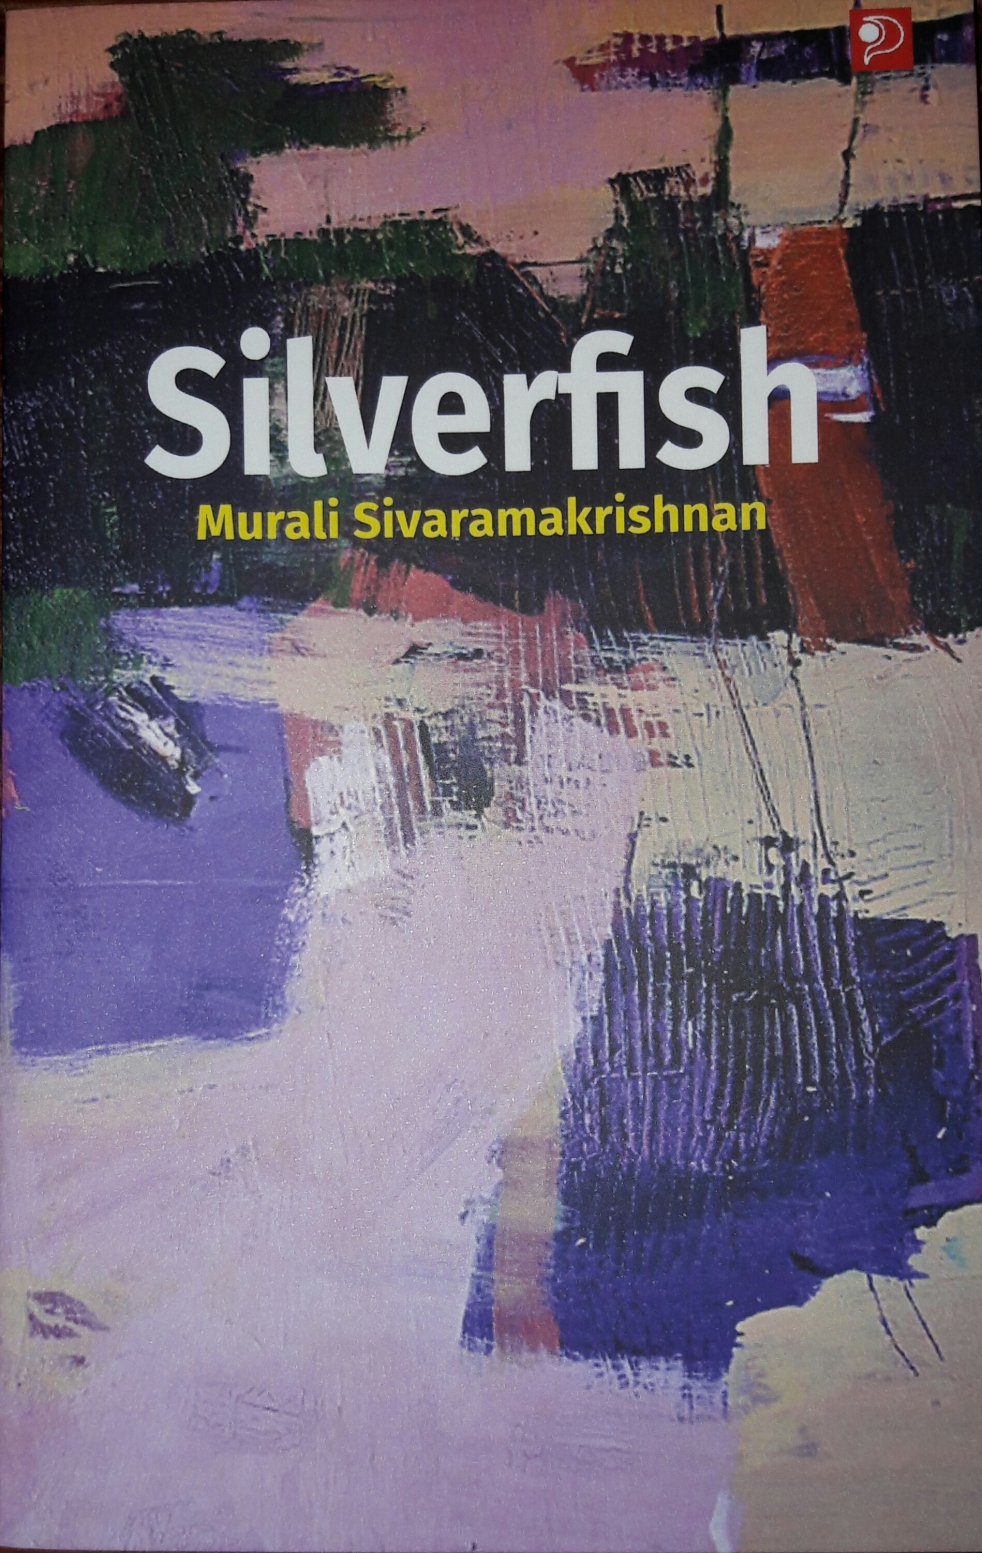 silverfish-cover-page